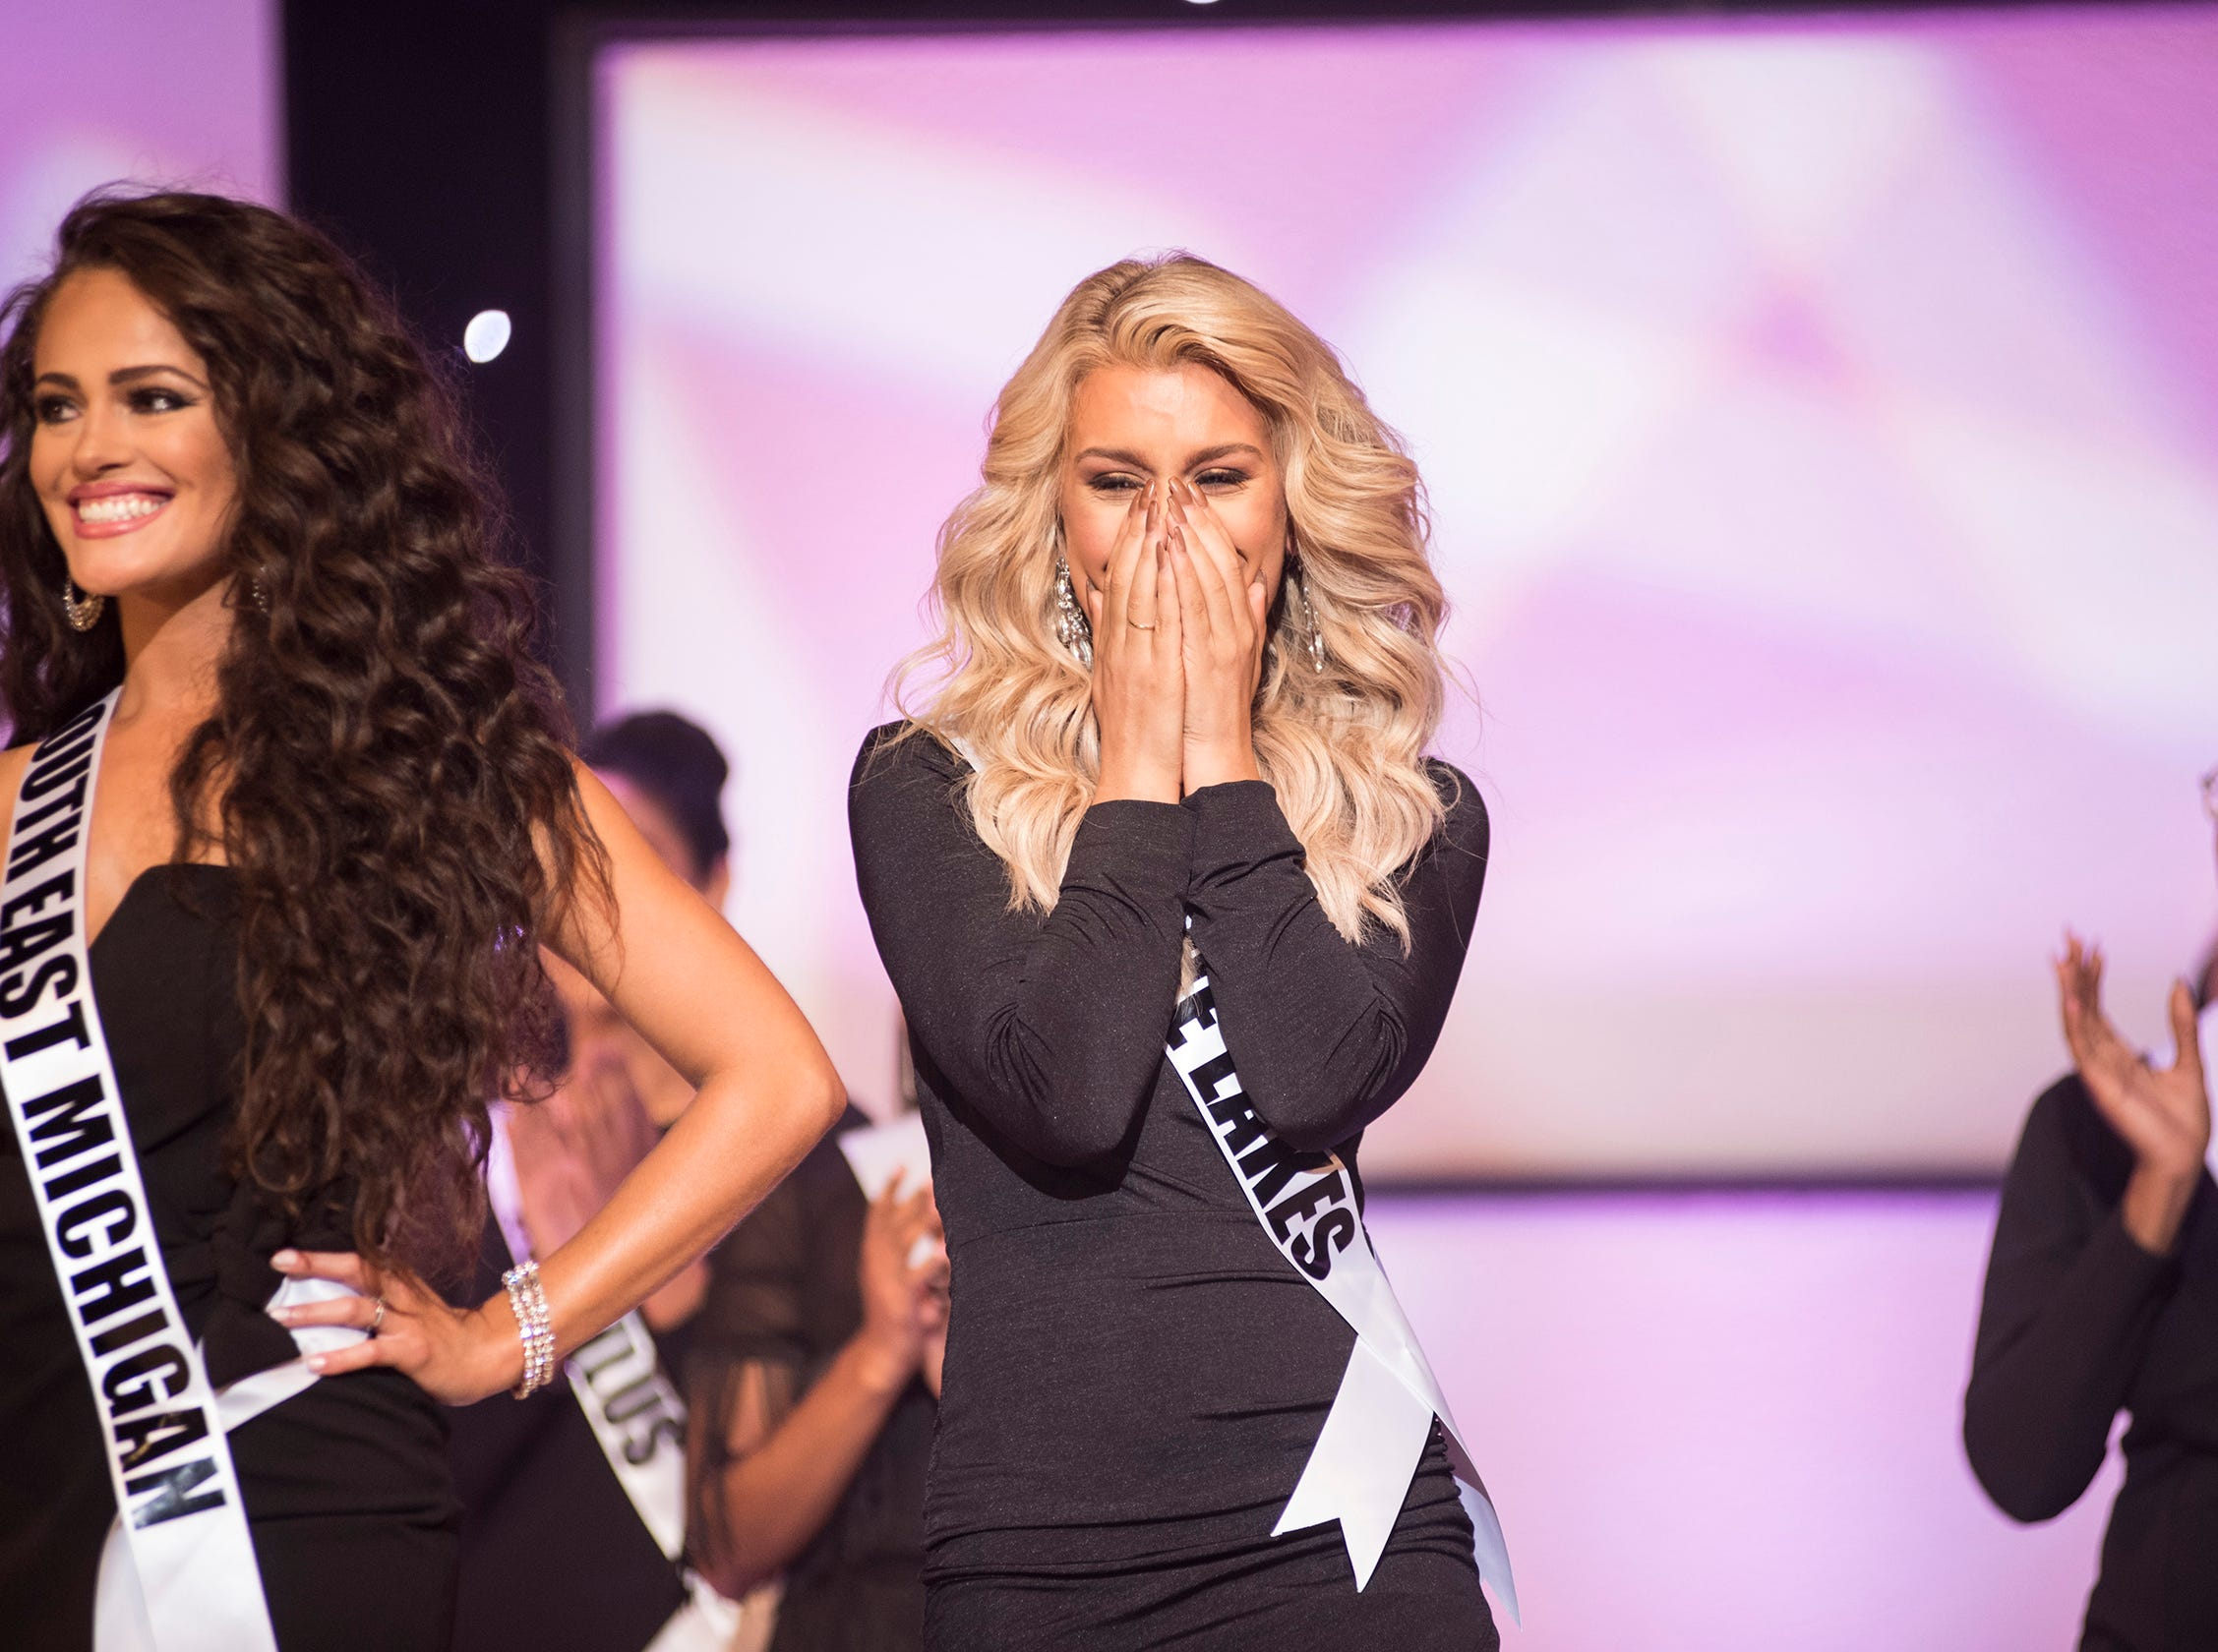 Miss Blue Lakes Emily Stevenson reacts to being selected for the semifinal round of the Miss Michigan USA pageant Saturday, Sept. 22, 2018 at McMorran Theater.